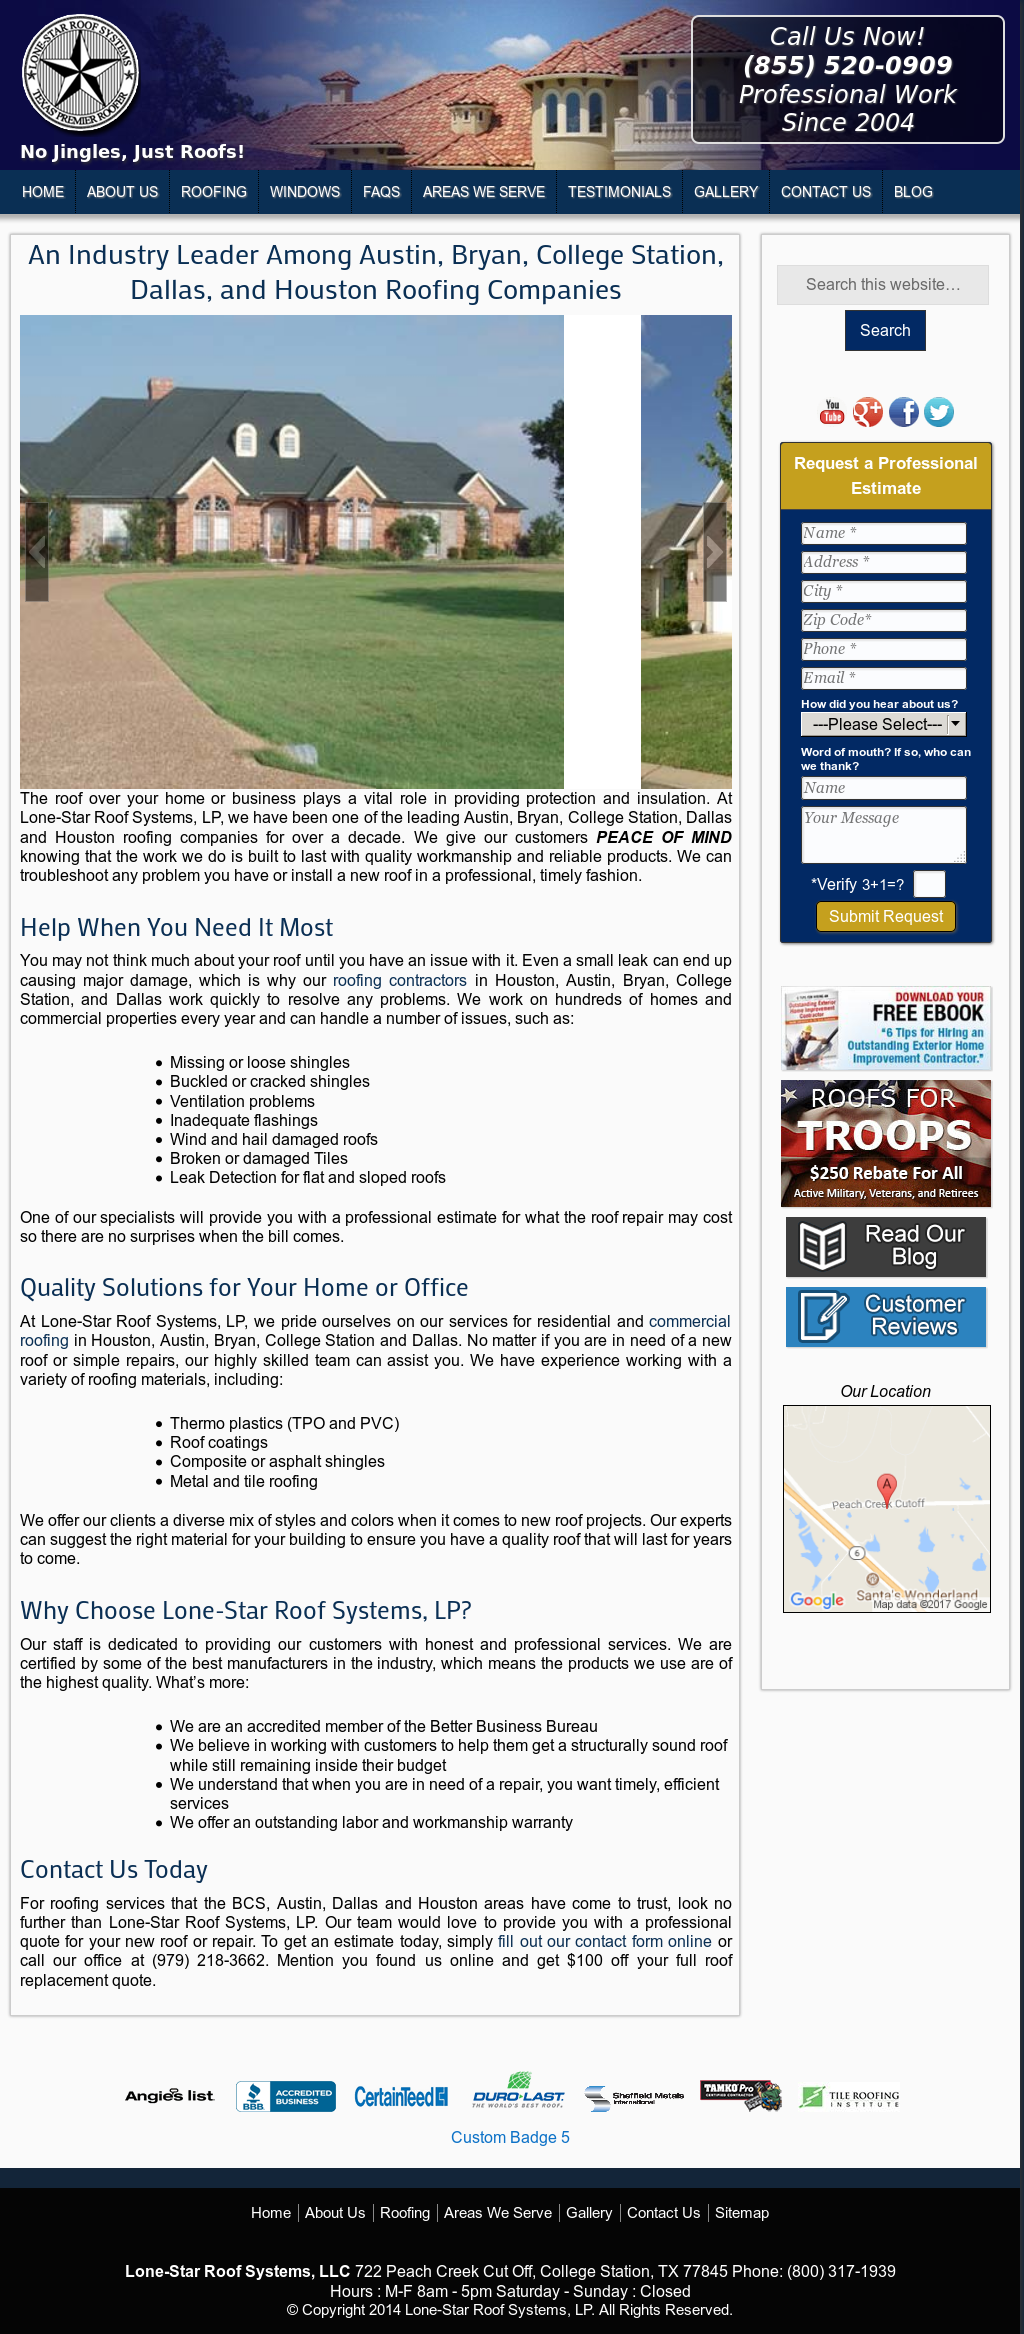 Lone Star Roof Systems Website History